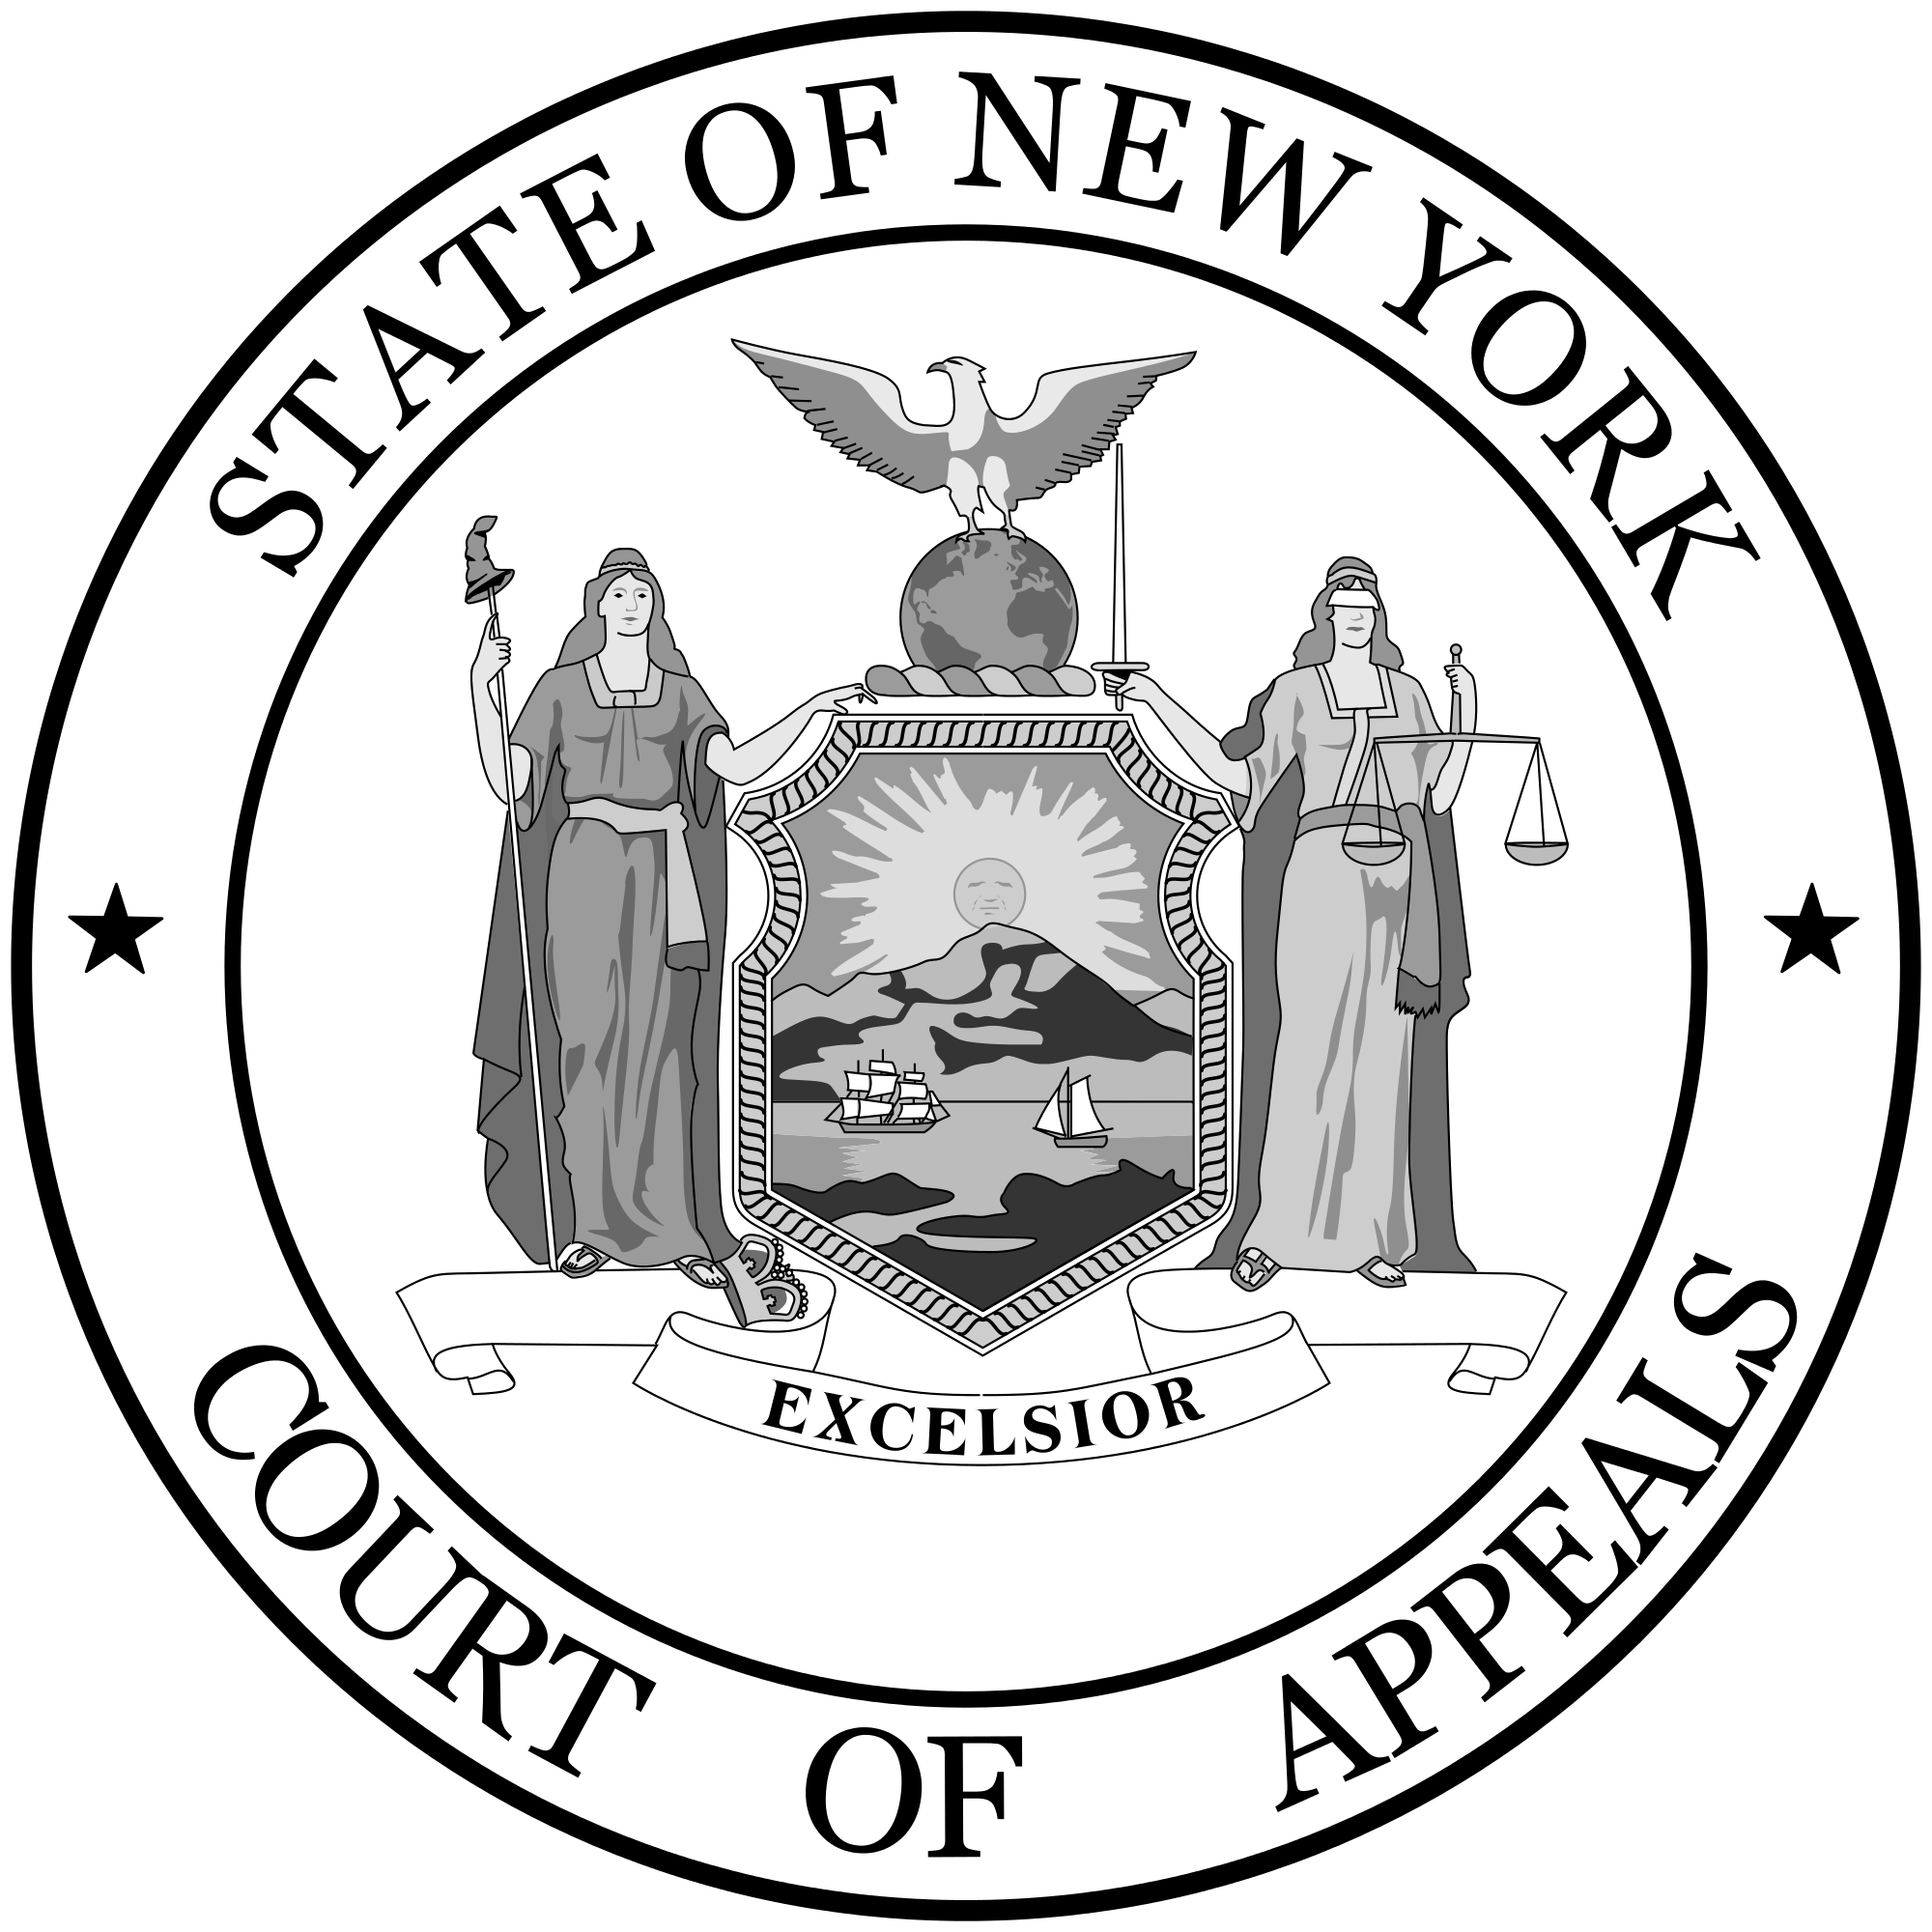 New york state seal png. File of the court